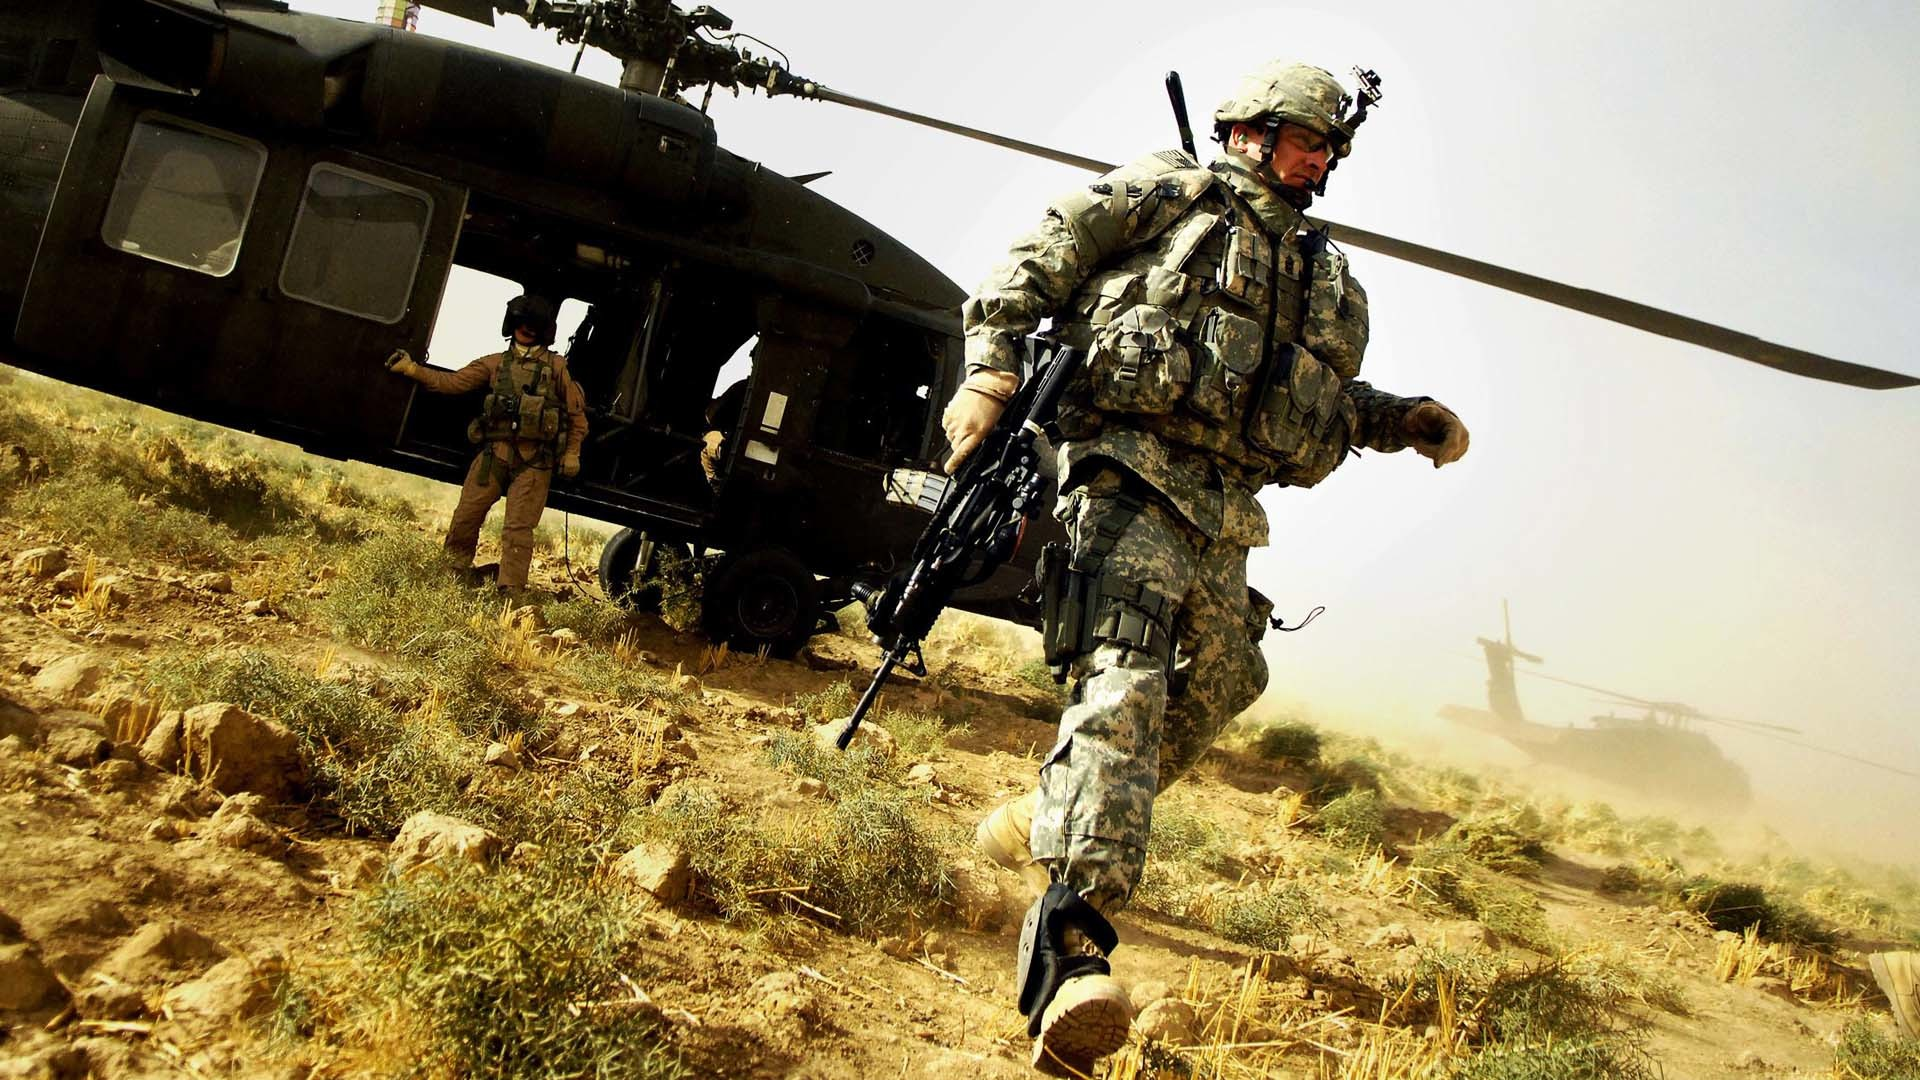 1920x1080 Us Army Soldier Wallpapers Full HD – Daily Backgrounds in HD